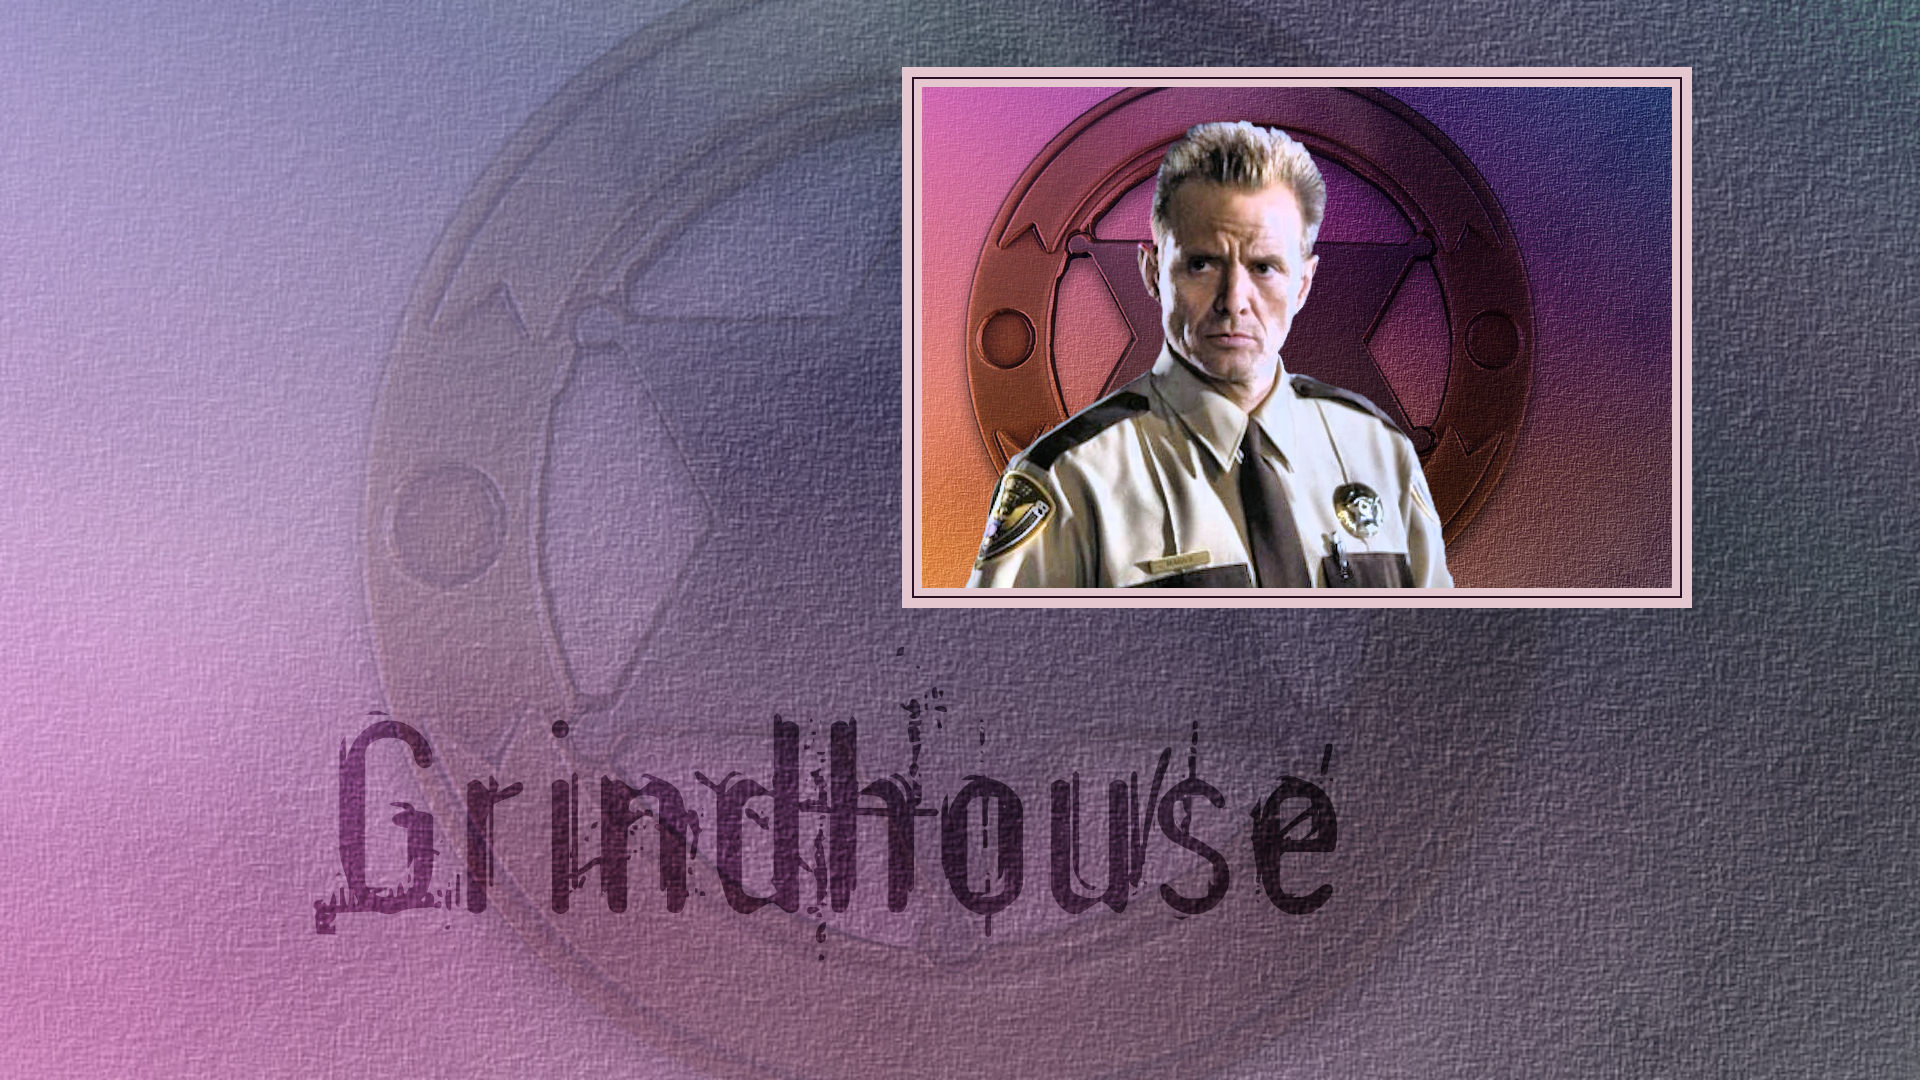 Sheriff Hague - Grindhouse by Tarlan